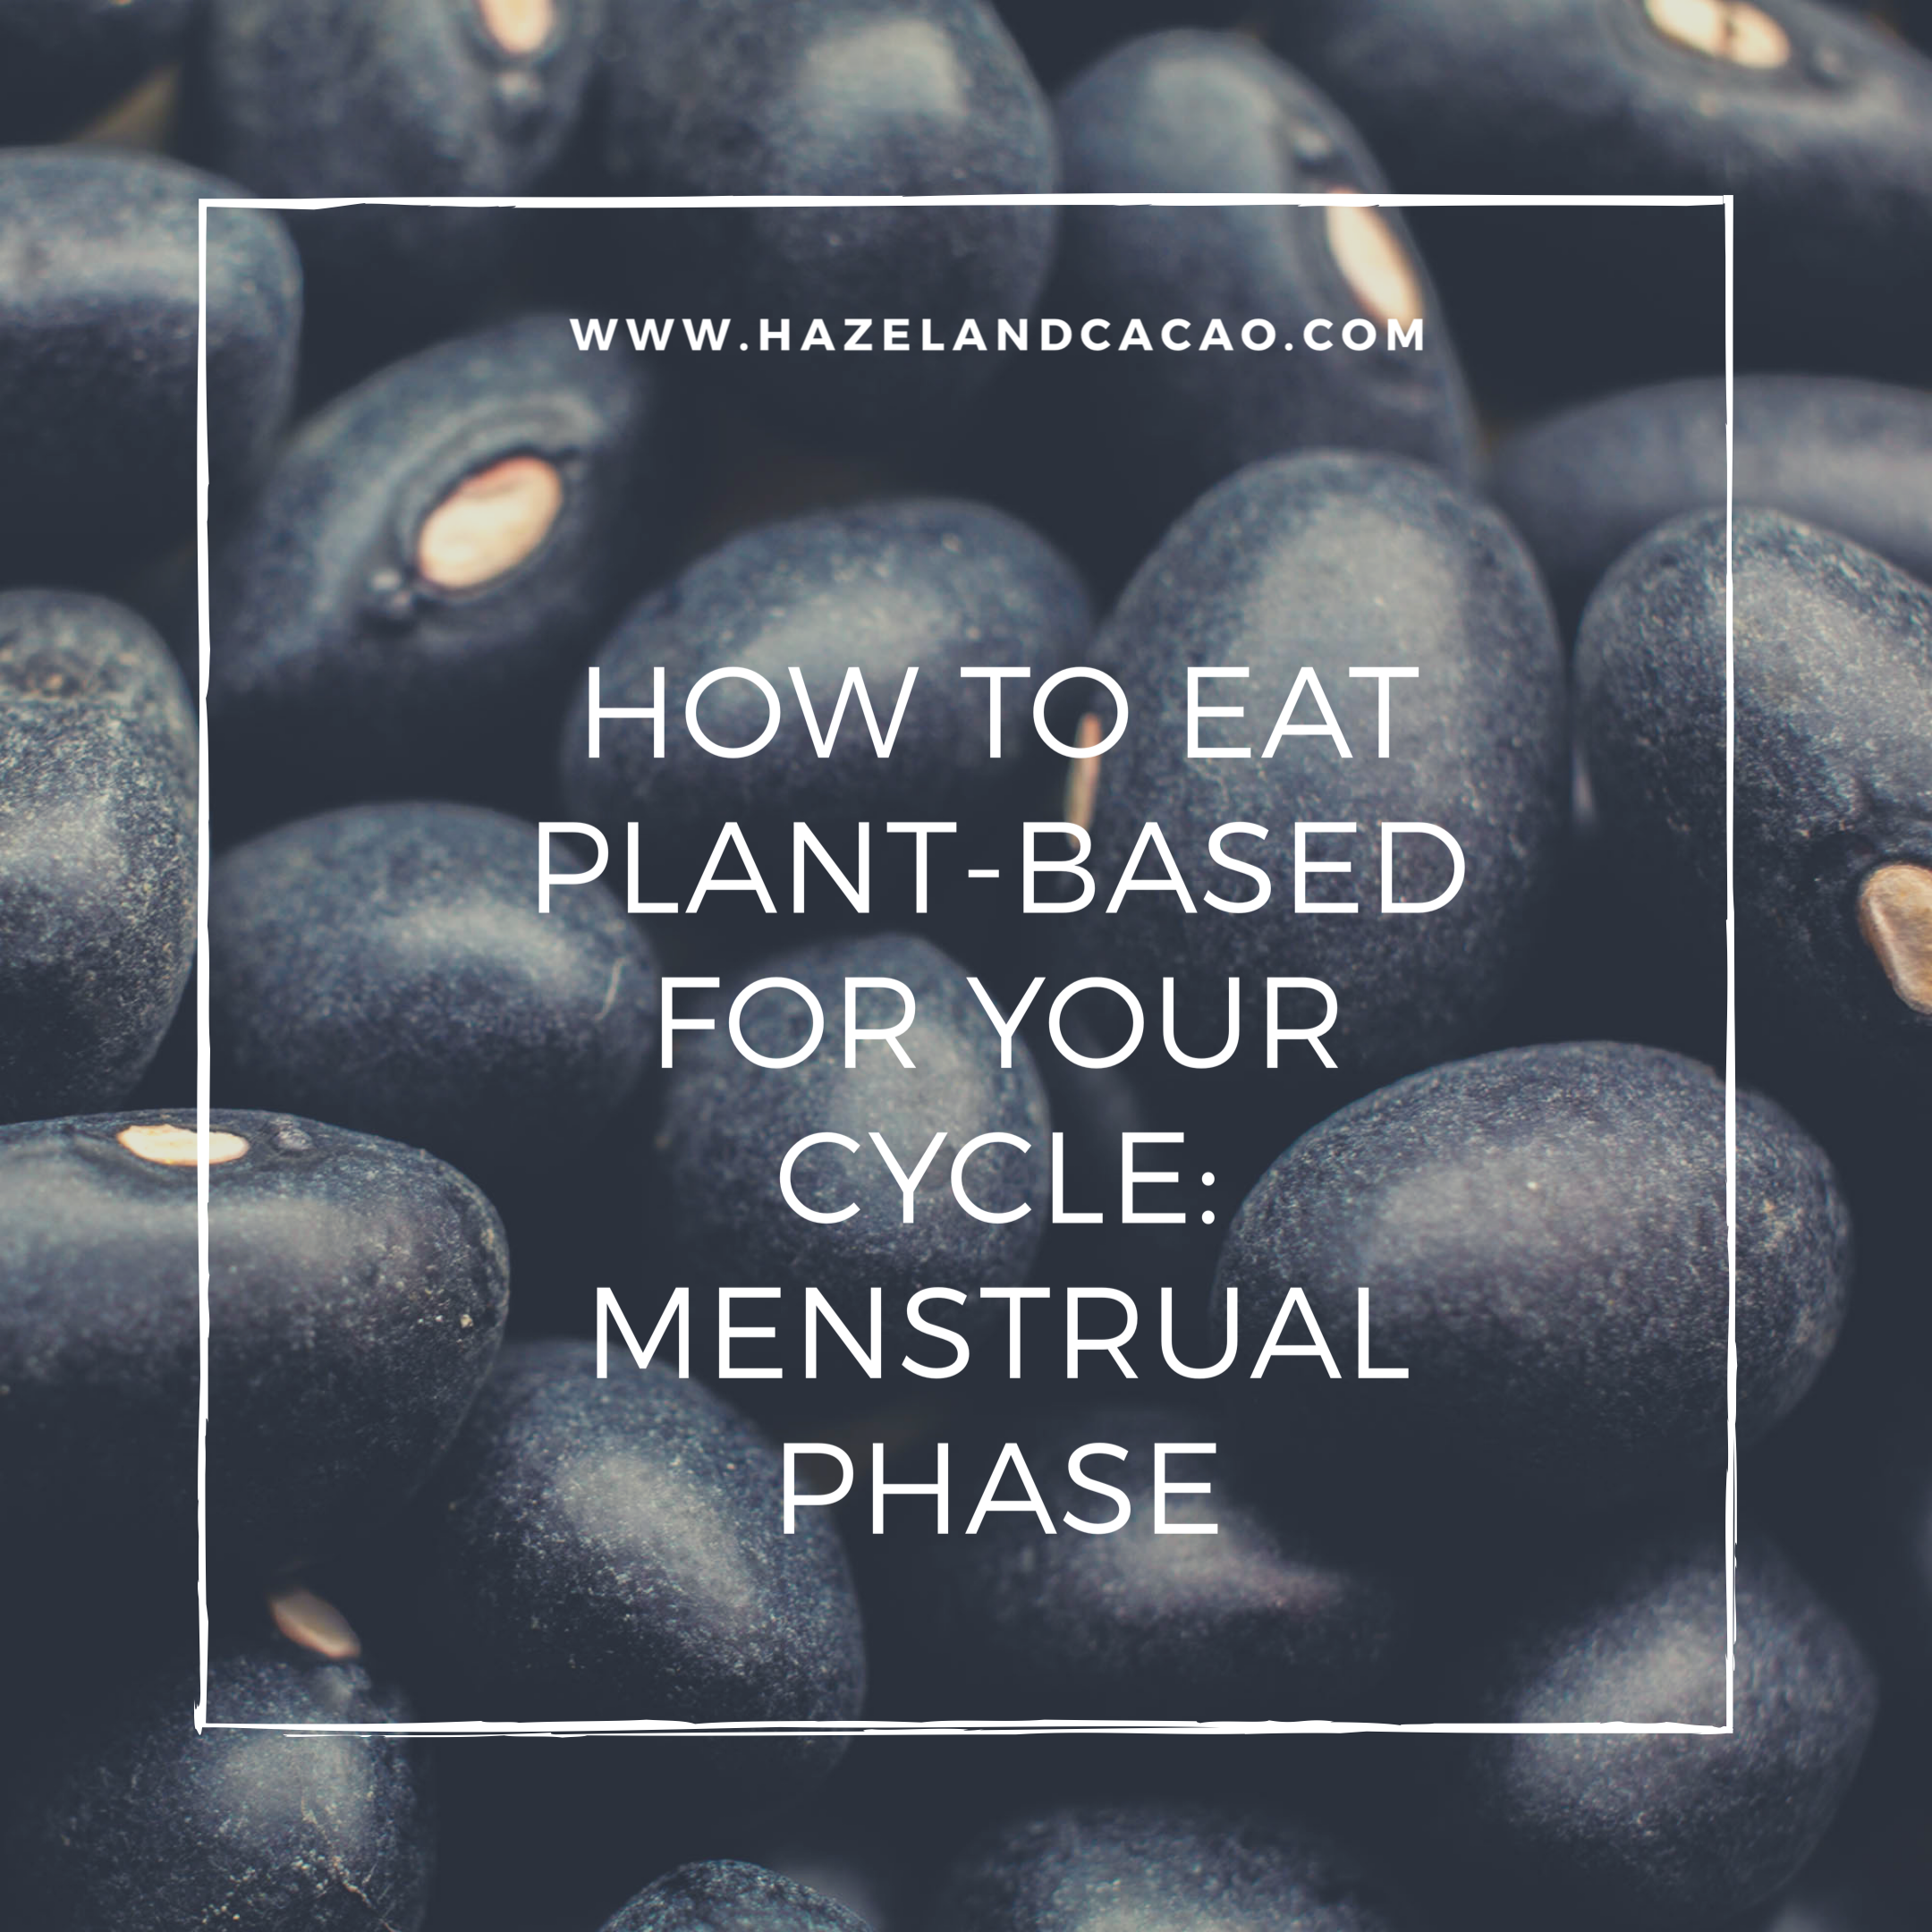 How to Eat Plant-Based for your cycle: Menstrual Phase